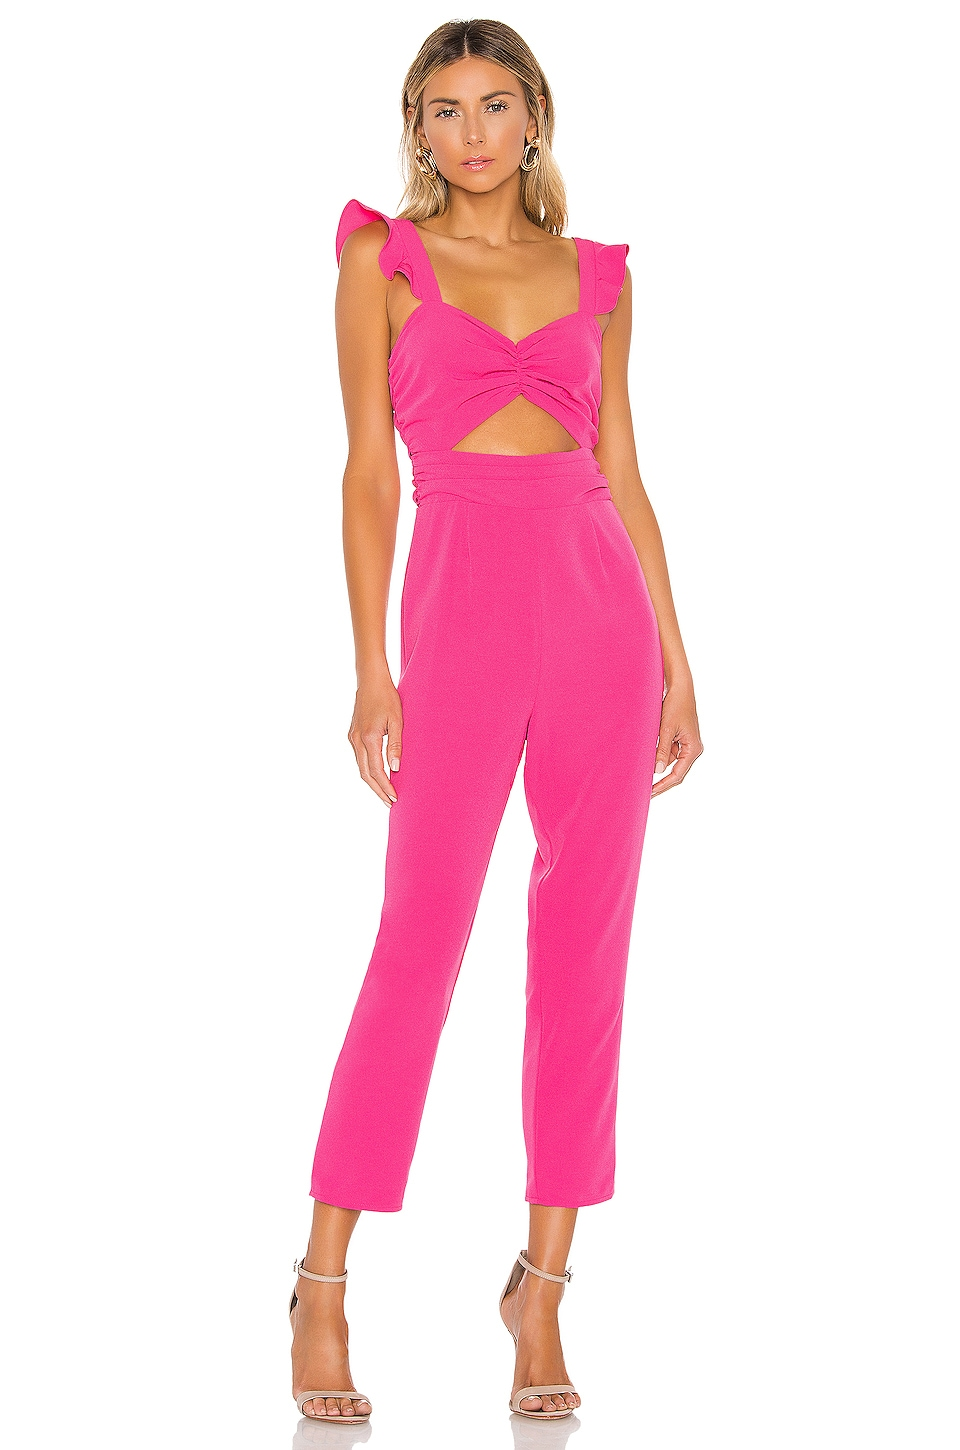 Knox Jumpsuit                   Lovers + Friends                                                                                                                                                     Sale price:                                                                        CA$ 132.08                                                                                                  Previous price:                                                                       CA$ 219.70 8